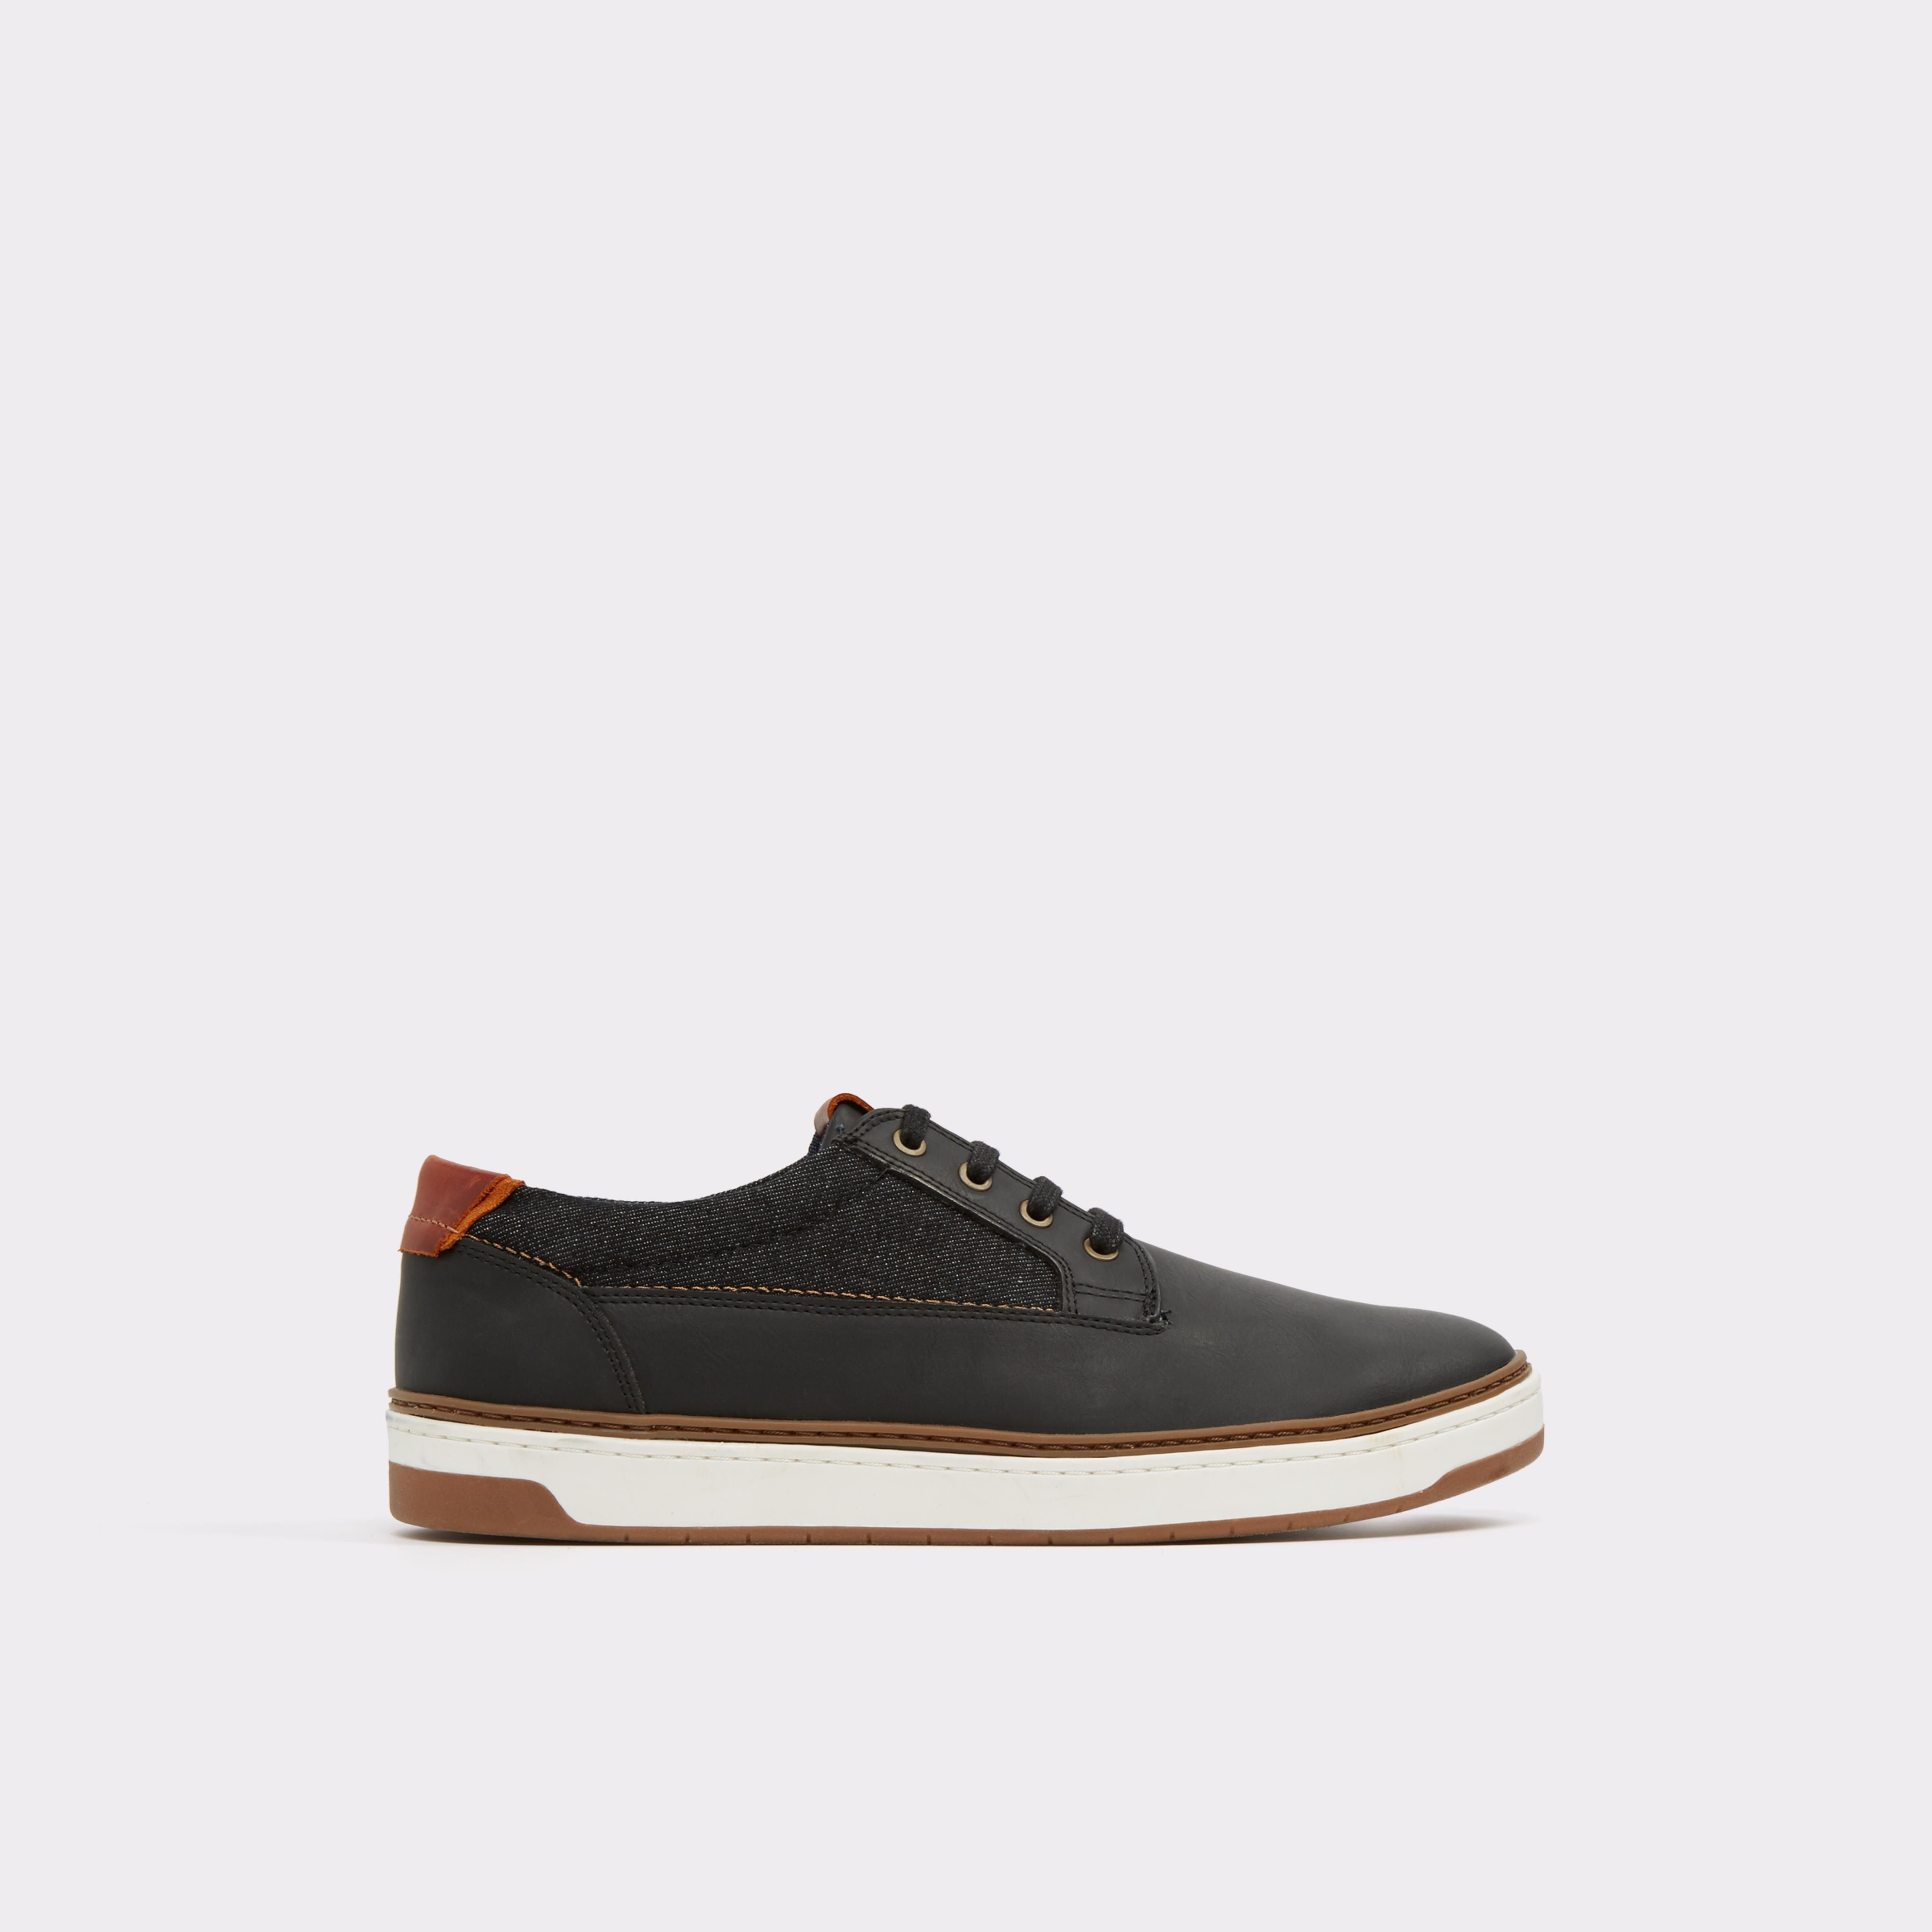 Mens Coltodino Low-Top Sneakers Aldo